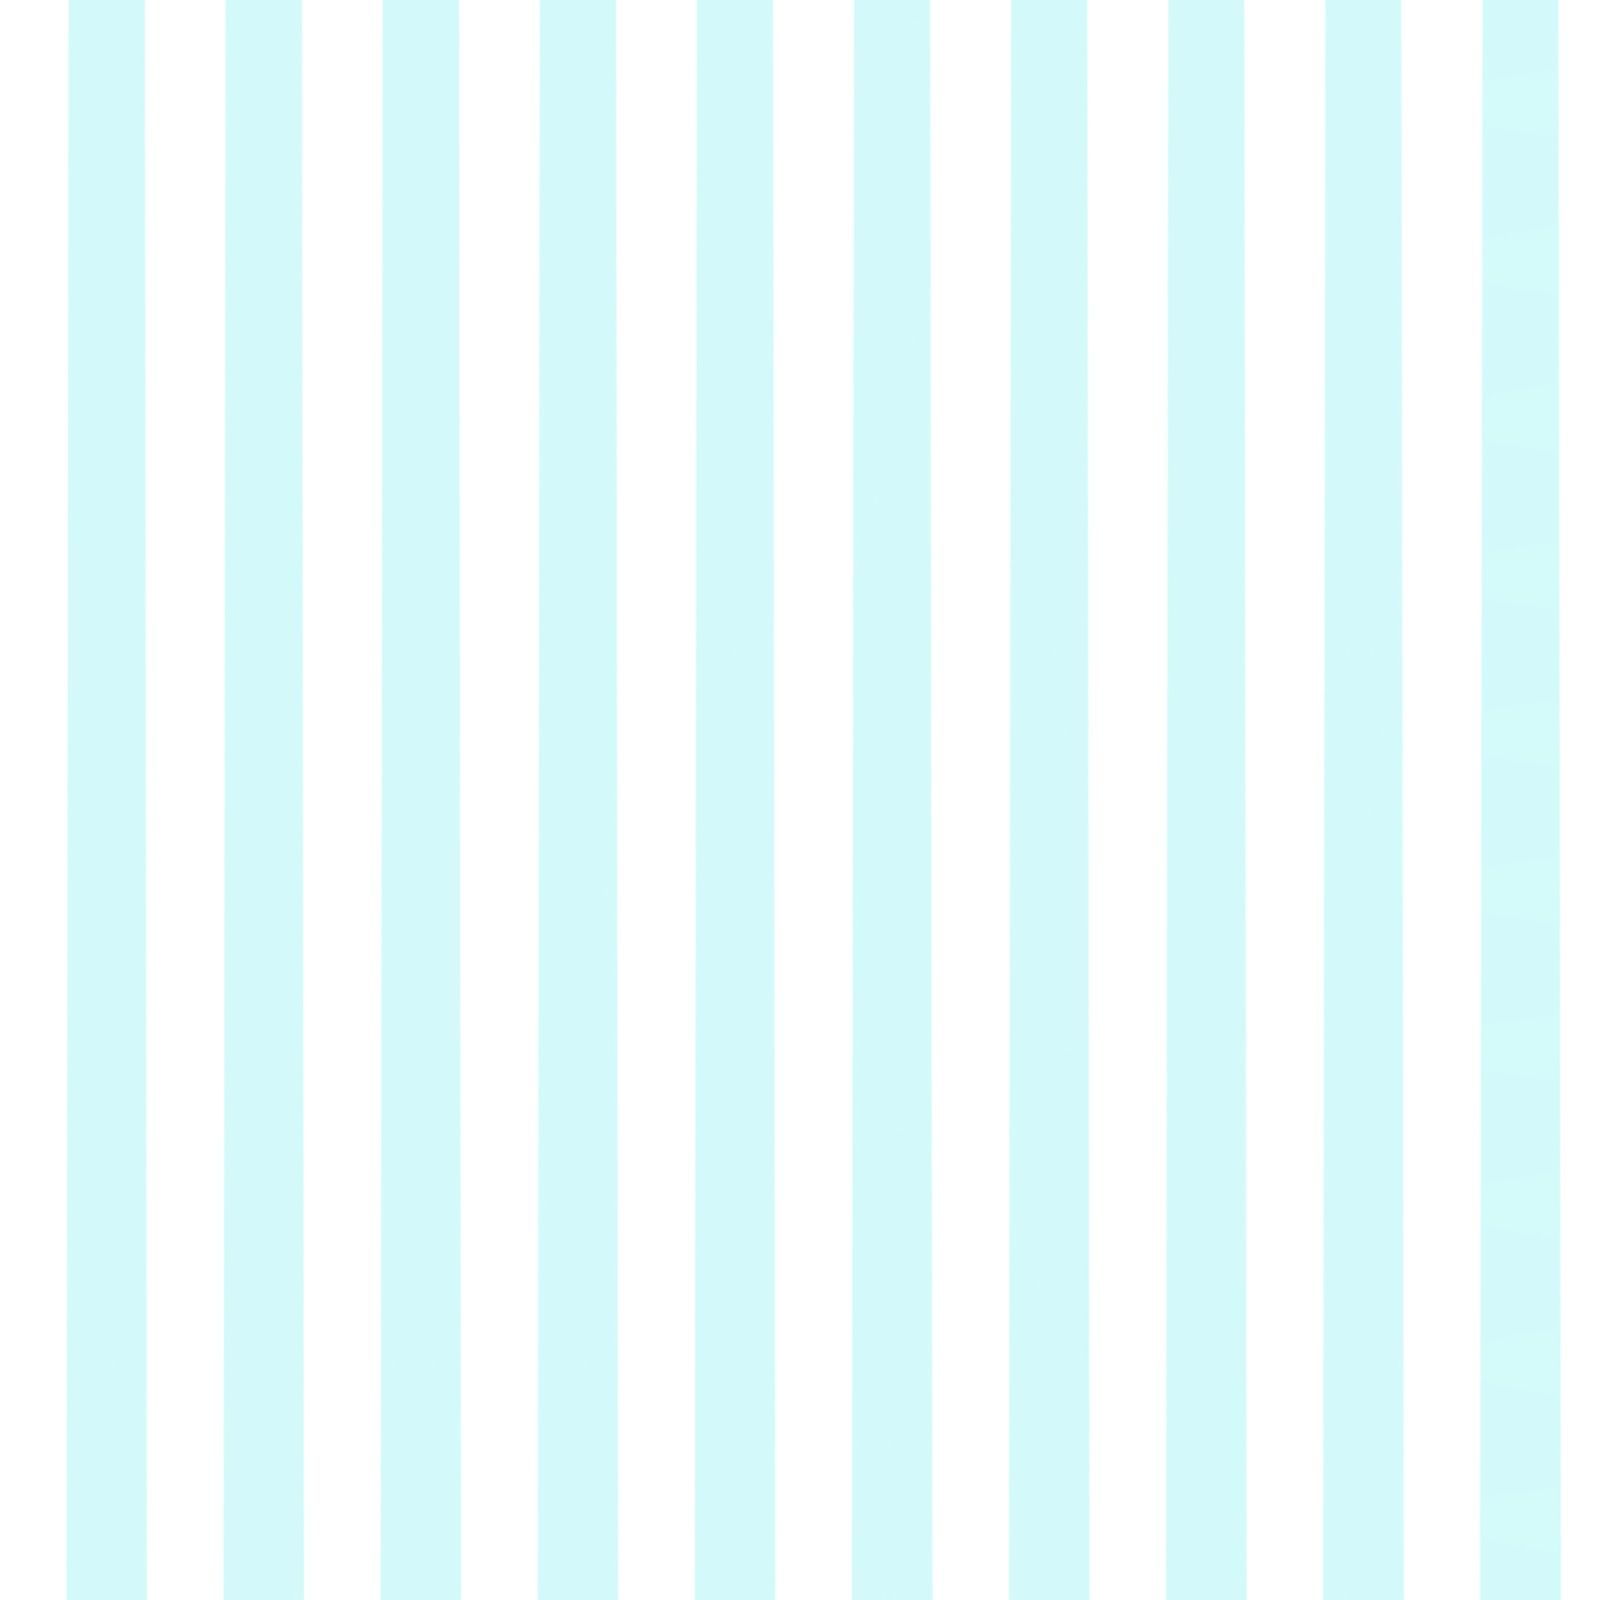 Stampin D'Amour: Free Digi Scrapbook Paper - Pastel Blue ... Blue And White Stripe Pattern